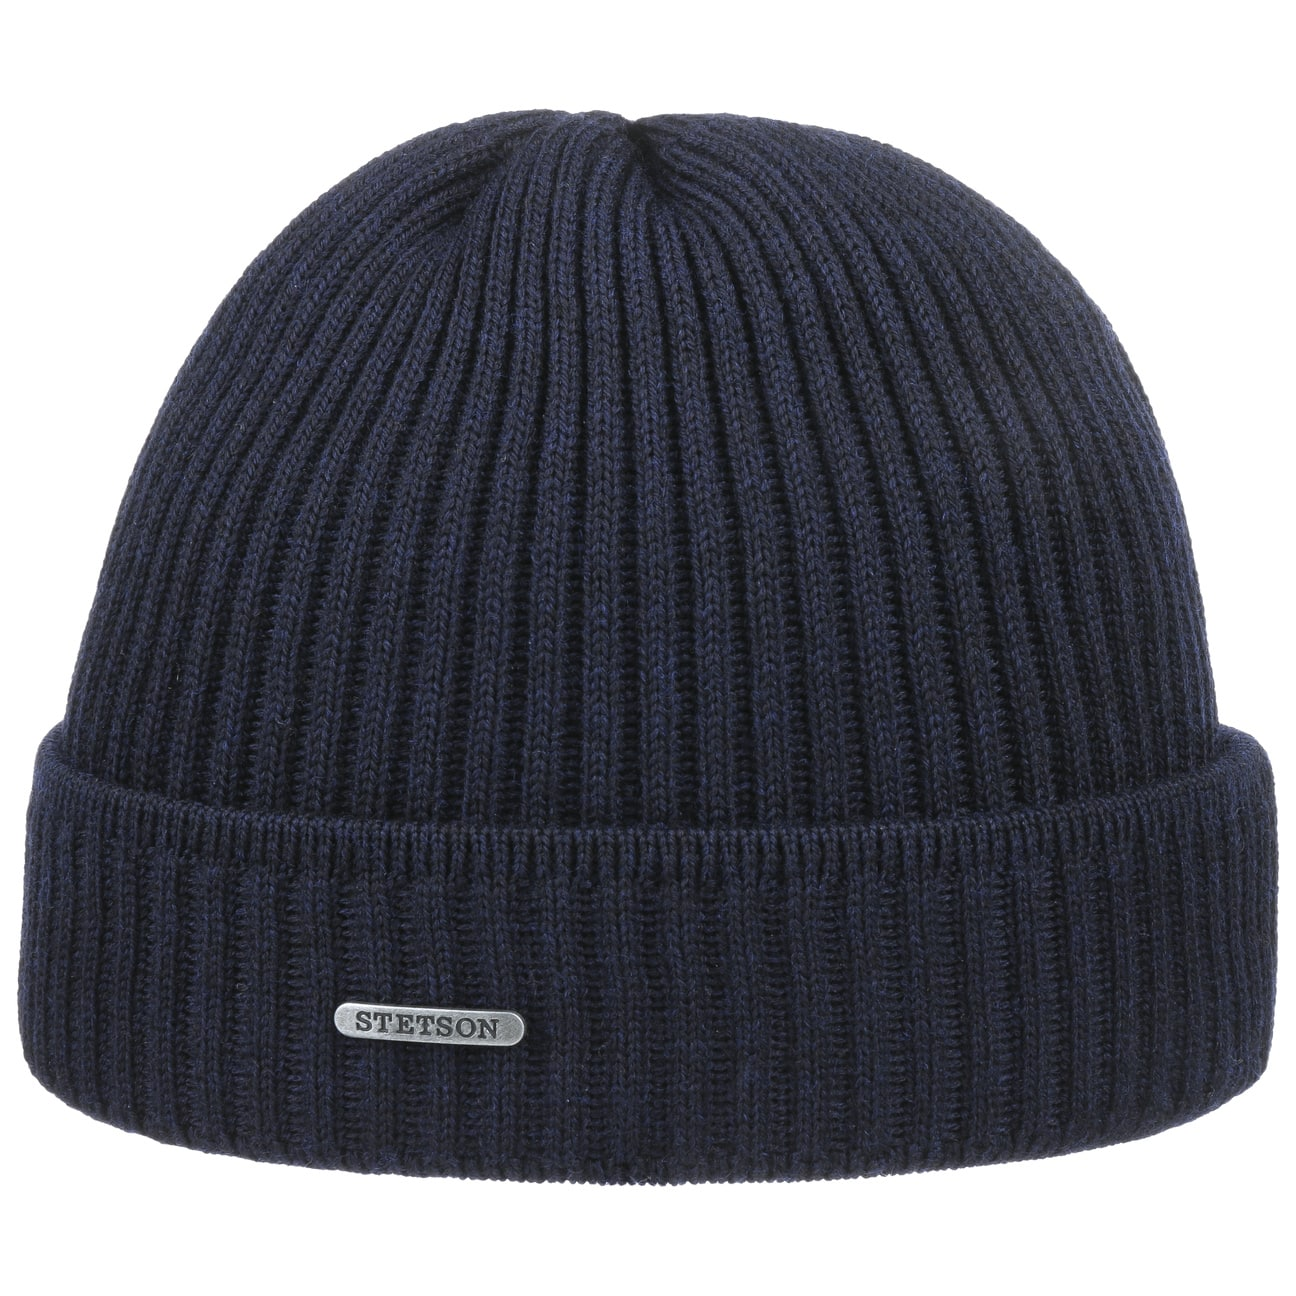 a1bd009fcea ... Parkman Knit Hat by Stetson - blue 1 ...